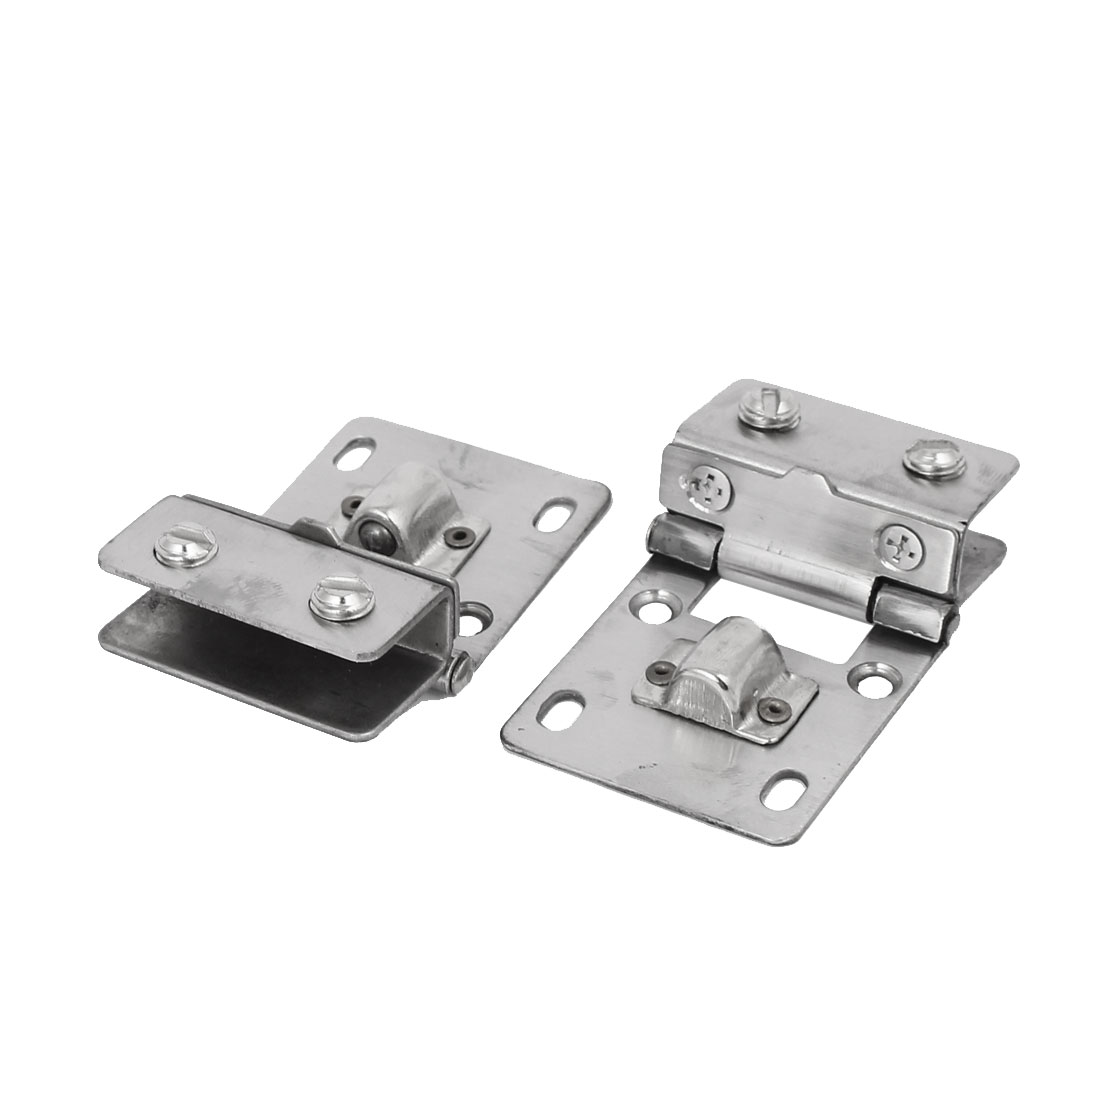 UXCELL 11Mm Thickness Glass Wall Mounted Fitting Clip Door Hinge Catch Silver Tone 2Pcs(China (Mainland))